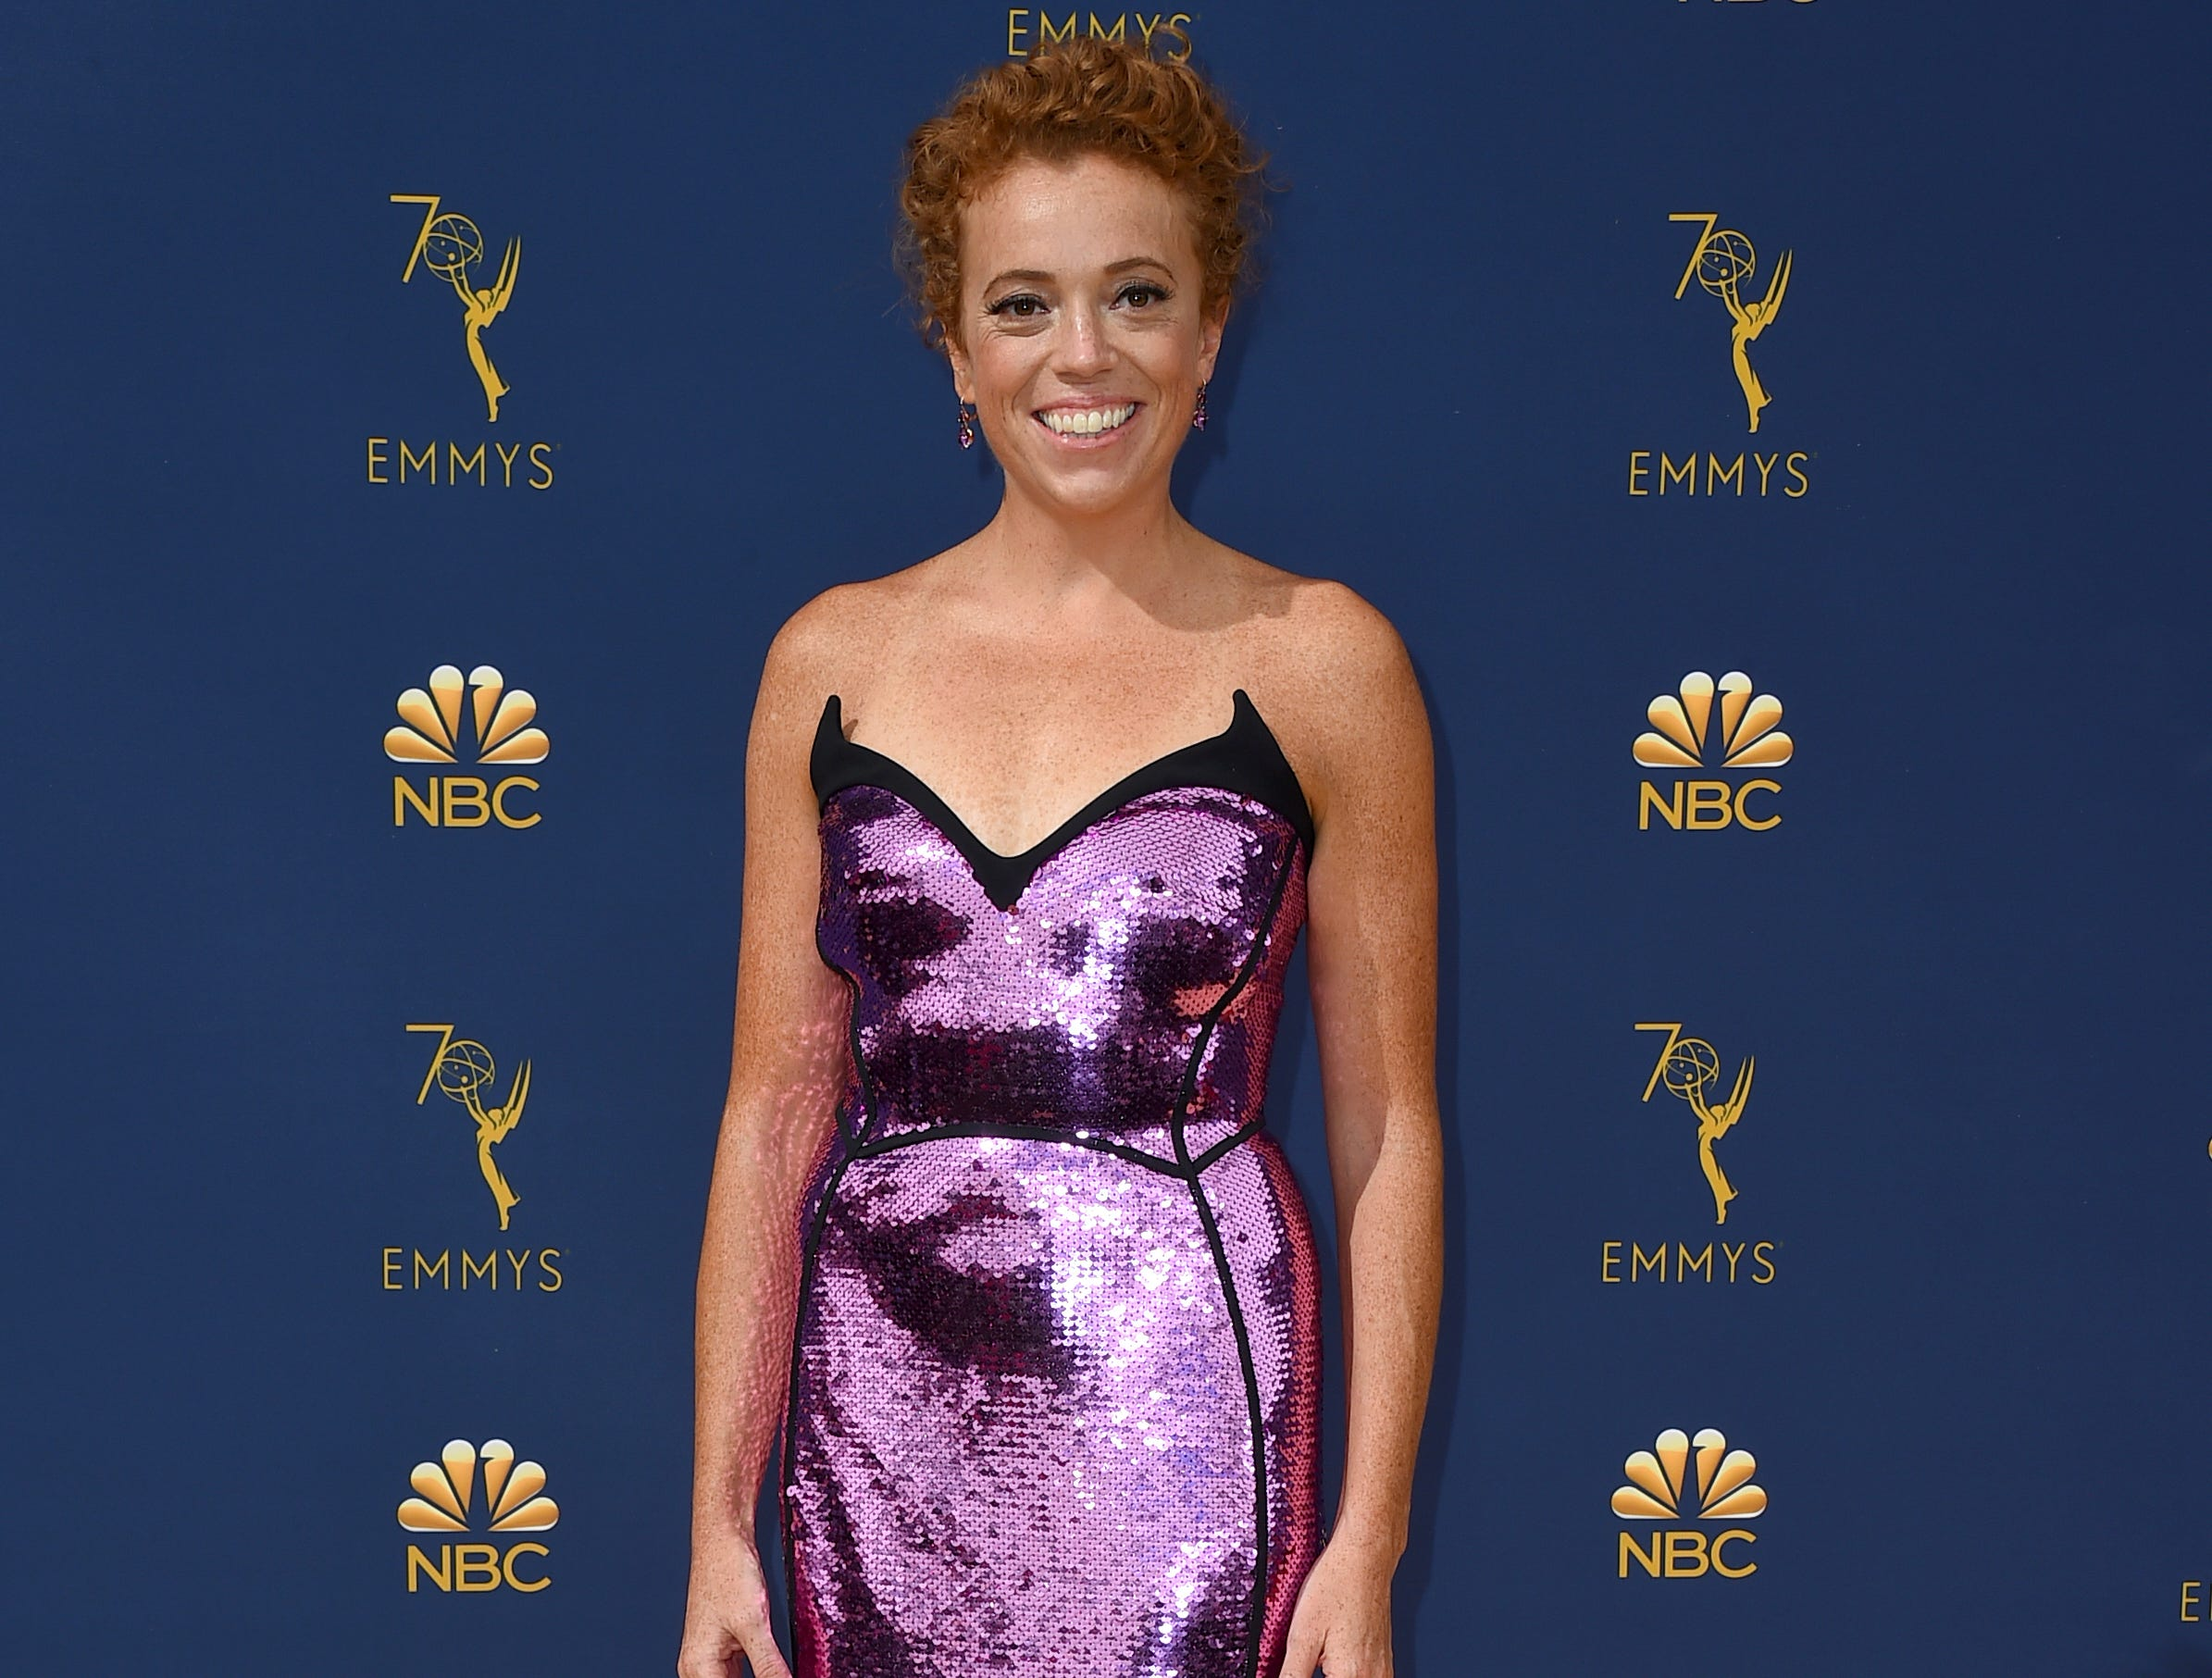 Michelle Wolf arrives at the 70th Primetime Emmy Awards on Monday, Sept. 17, 2018, at the Microsoft Theater in Los Angeles.